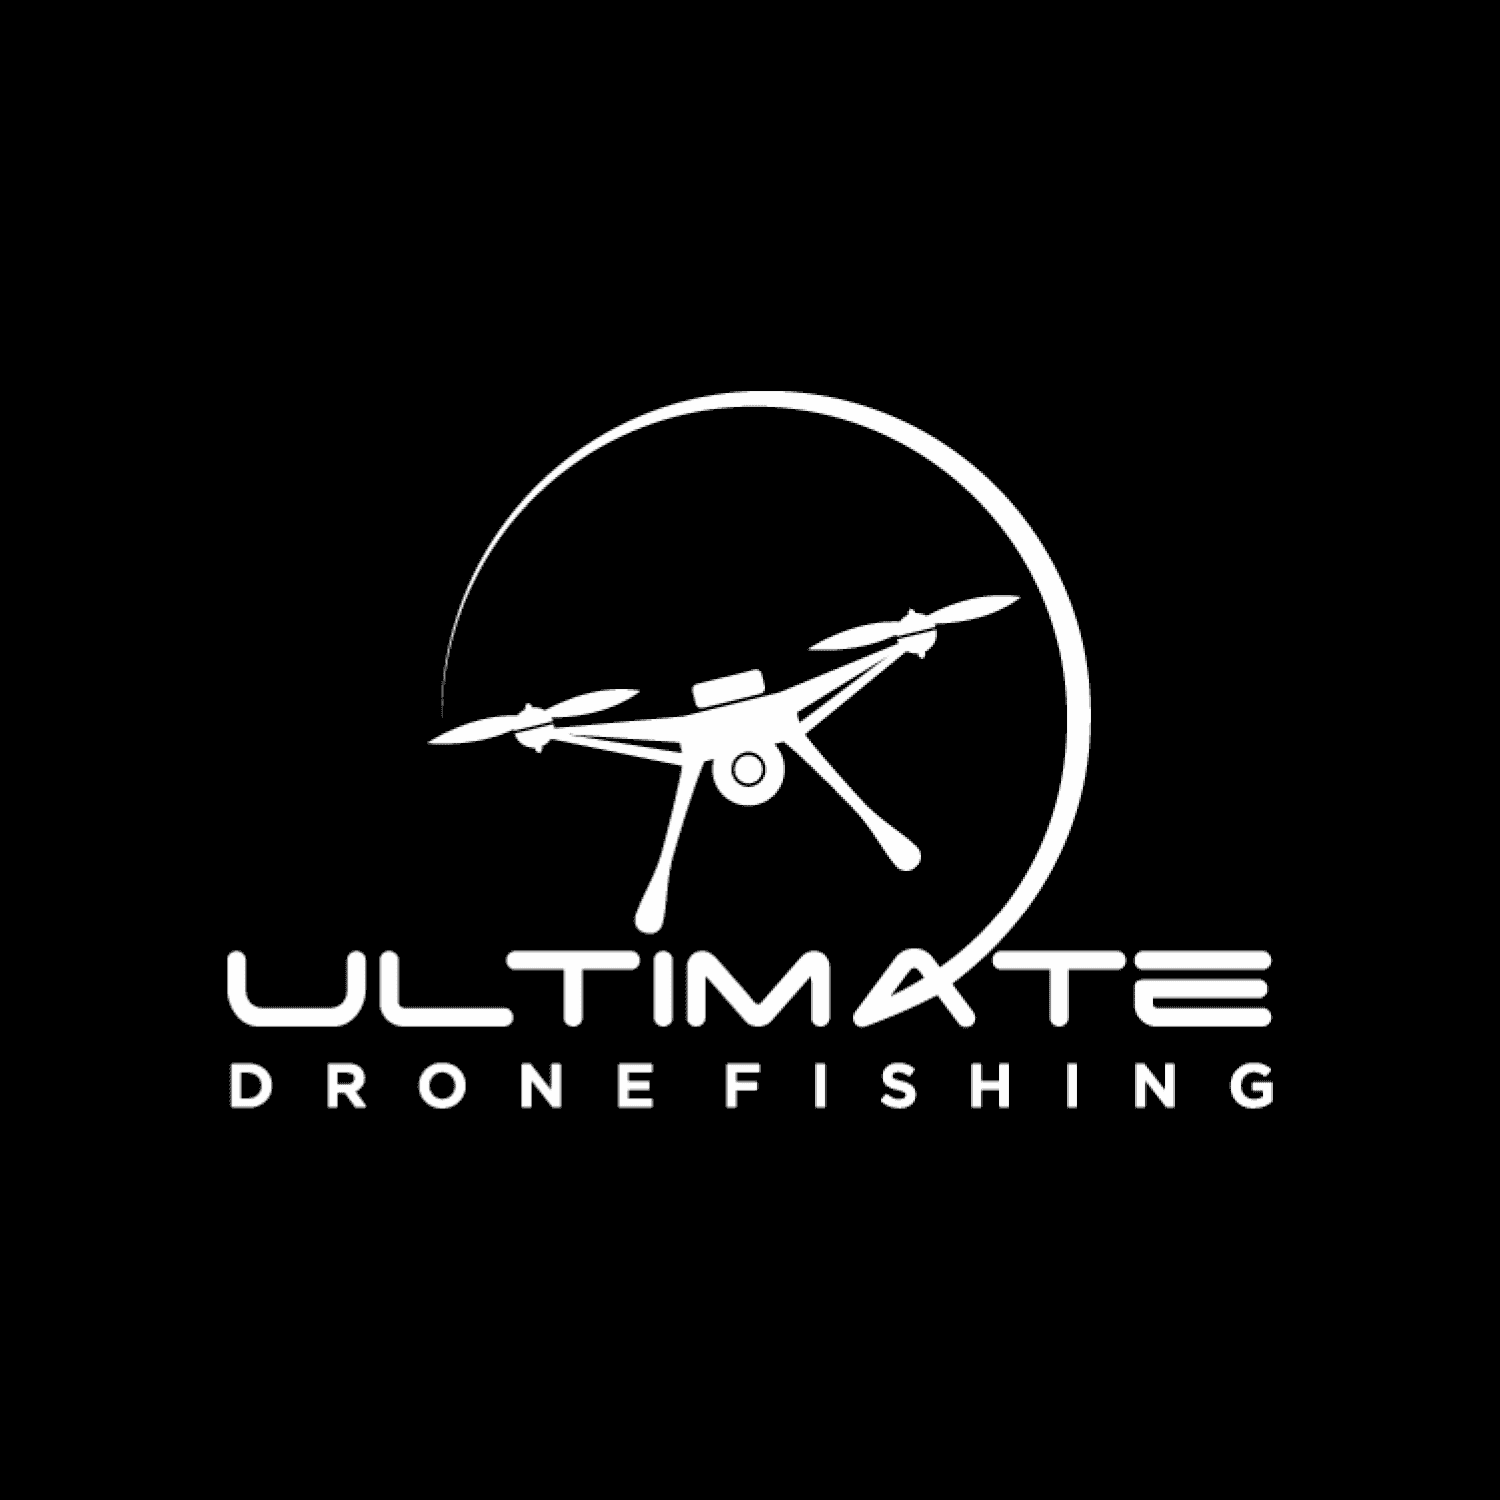 Ultimate Drone Fishing - Home of Poseidon Pro